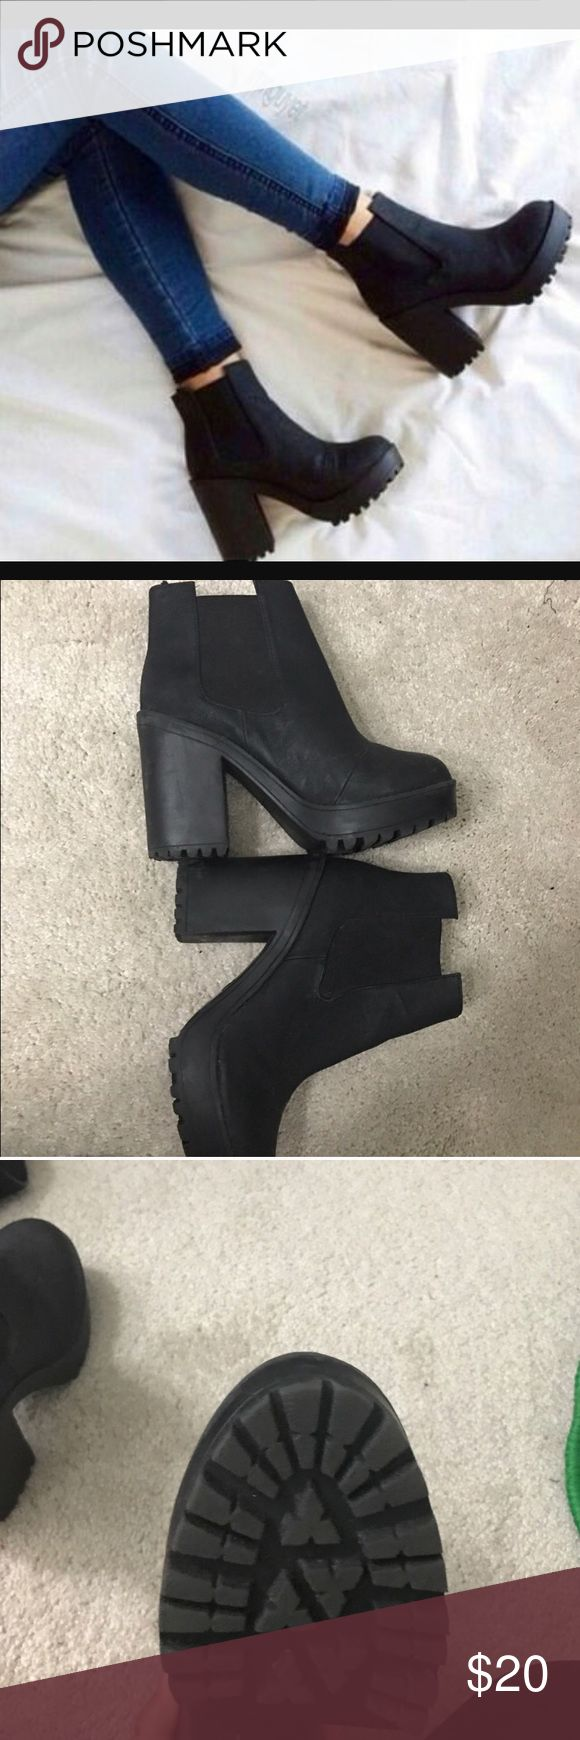 H&M BOOT HEELS Worn once! As you can see the bottoms are almost new. Great condition size 5.5 H&M Shoes Heeled Boots